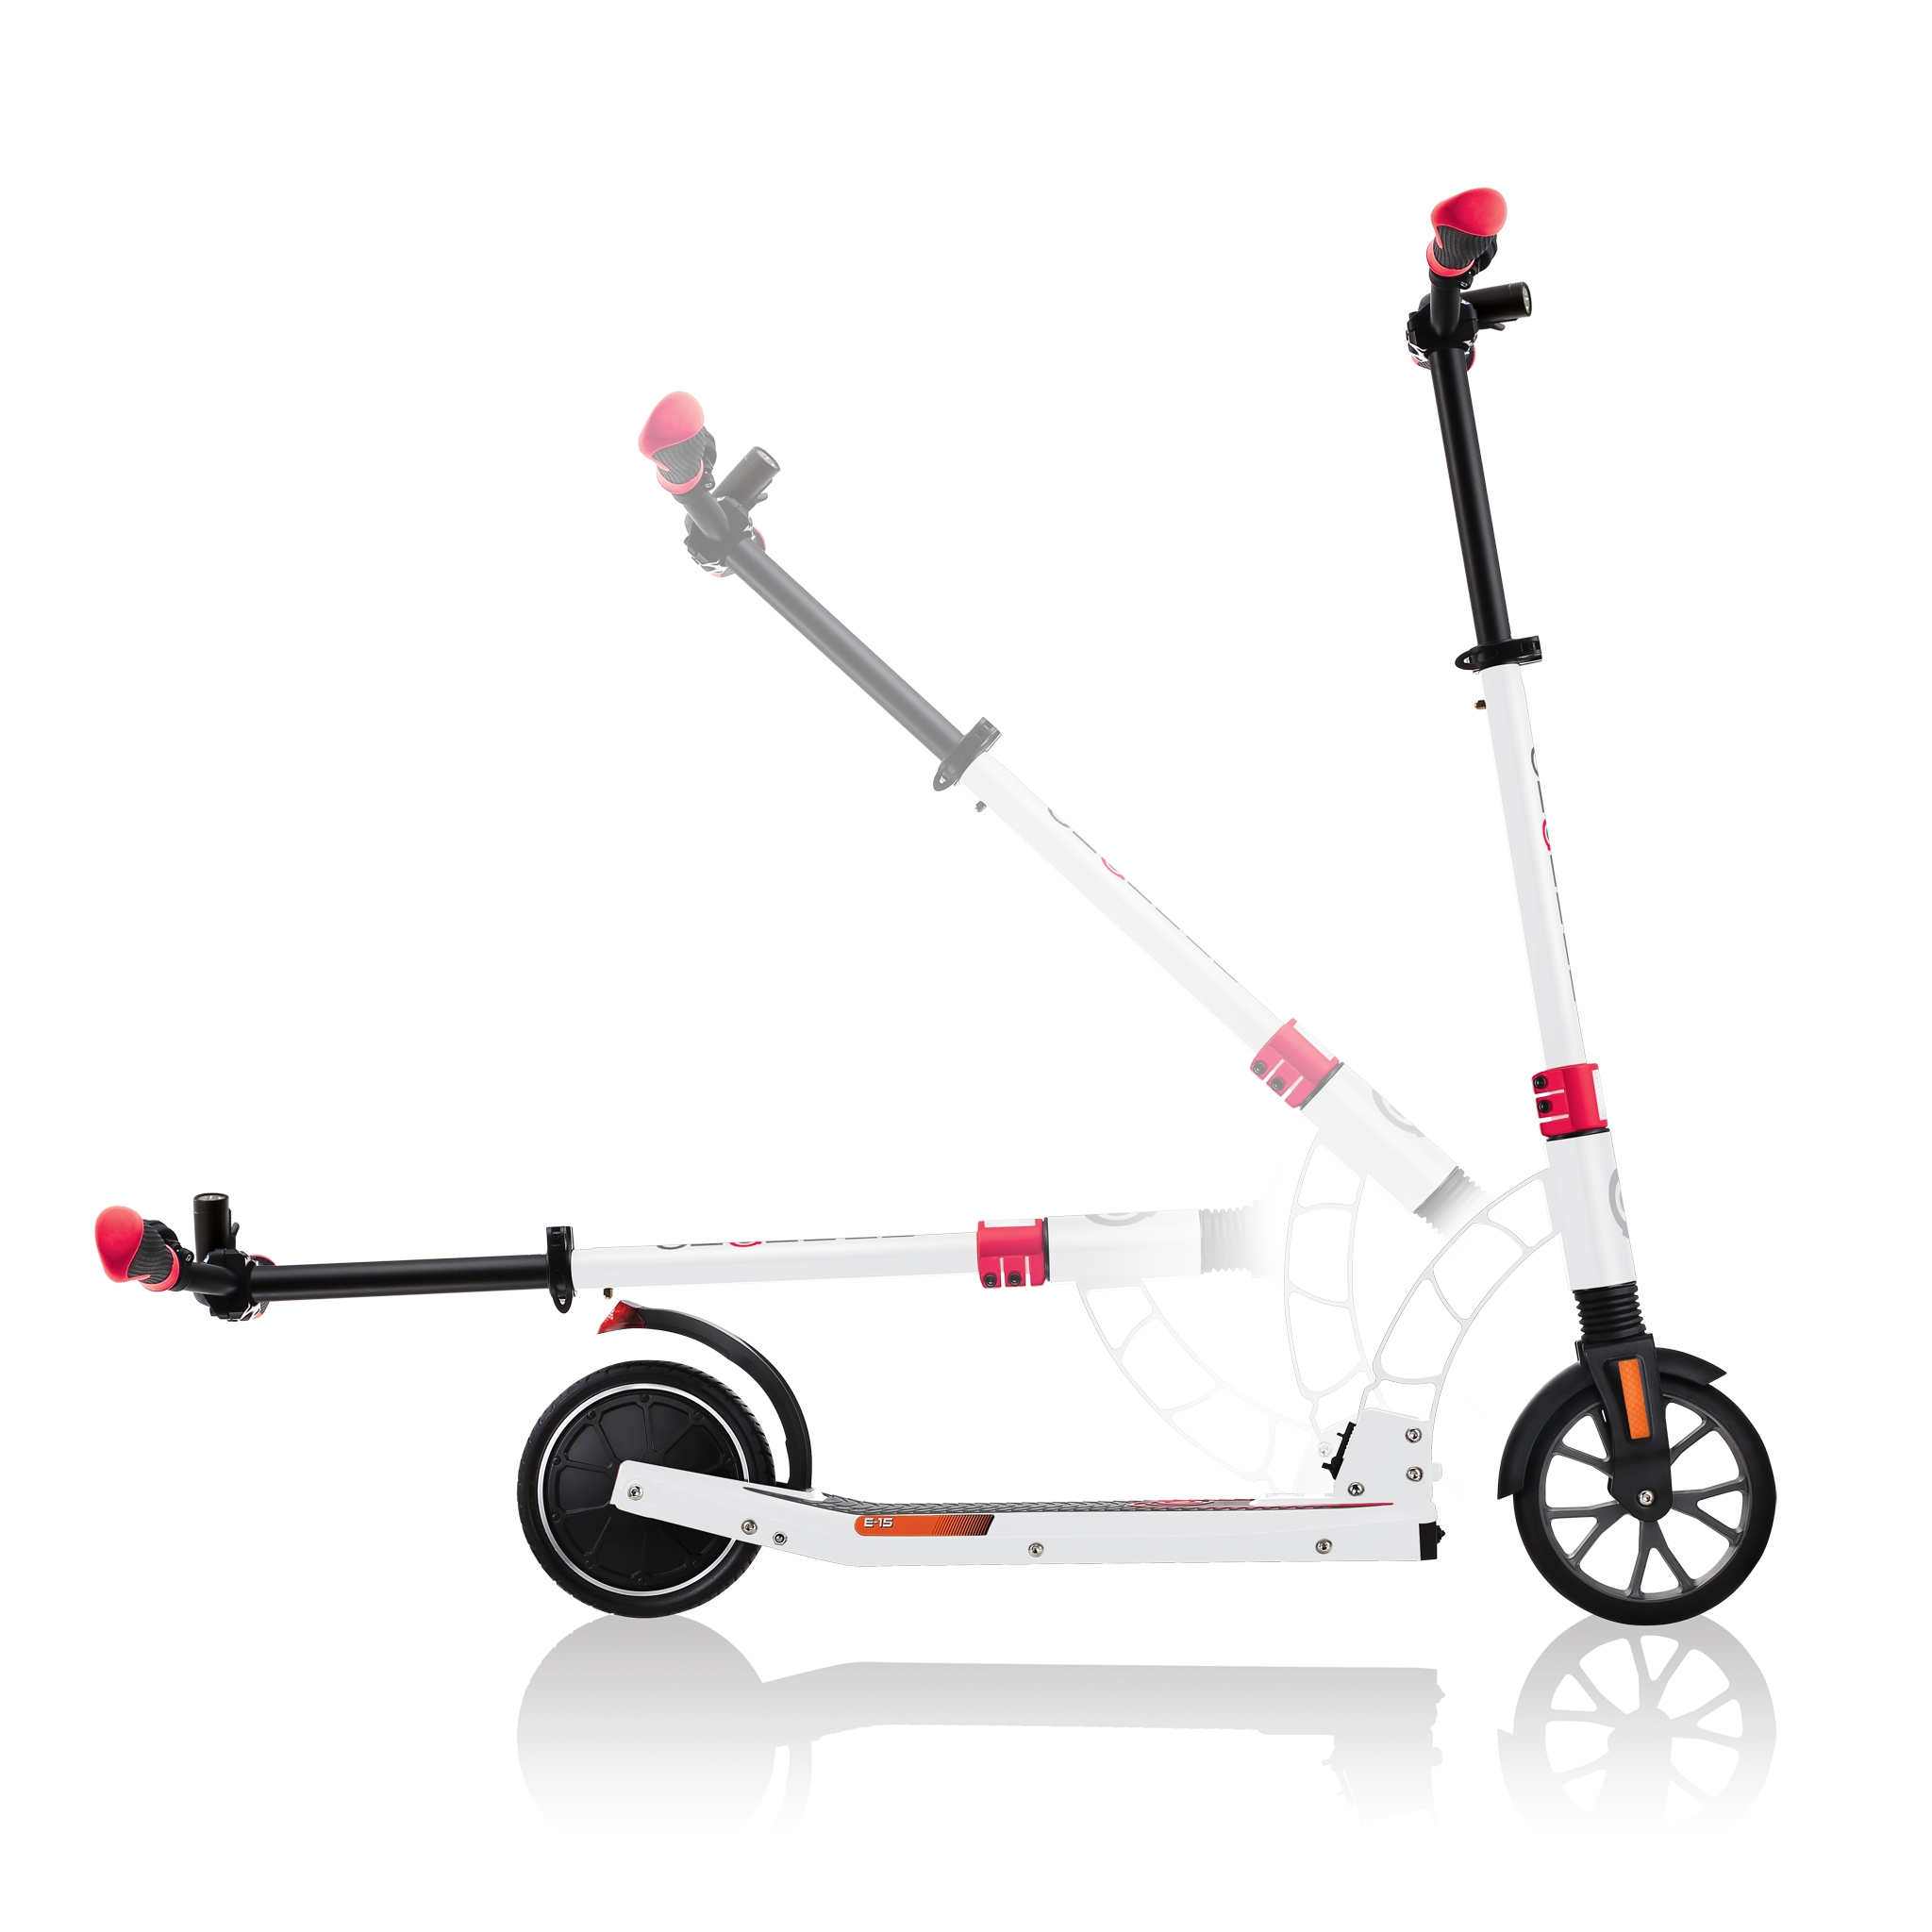 Globber-ONE-K-E-MOTION-15-foldable-electric-scooter-for-adults-and-teens-aged-14-and-above 1